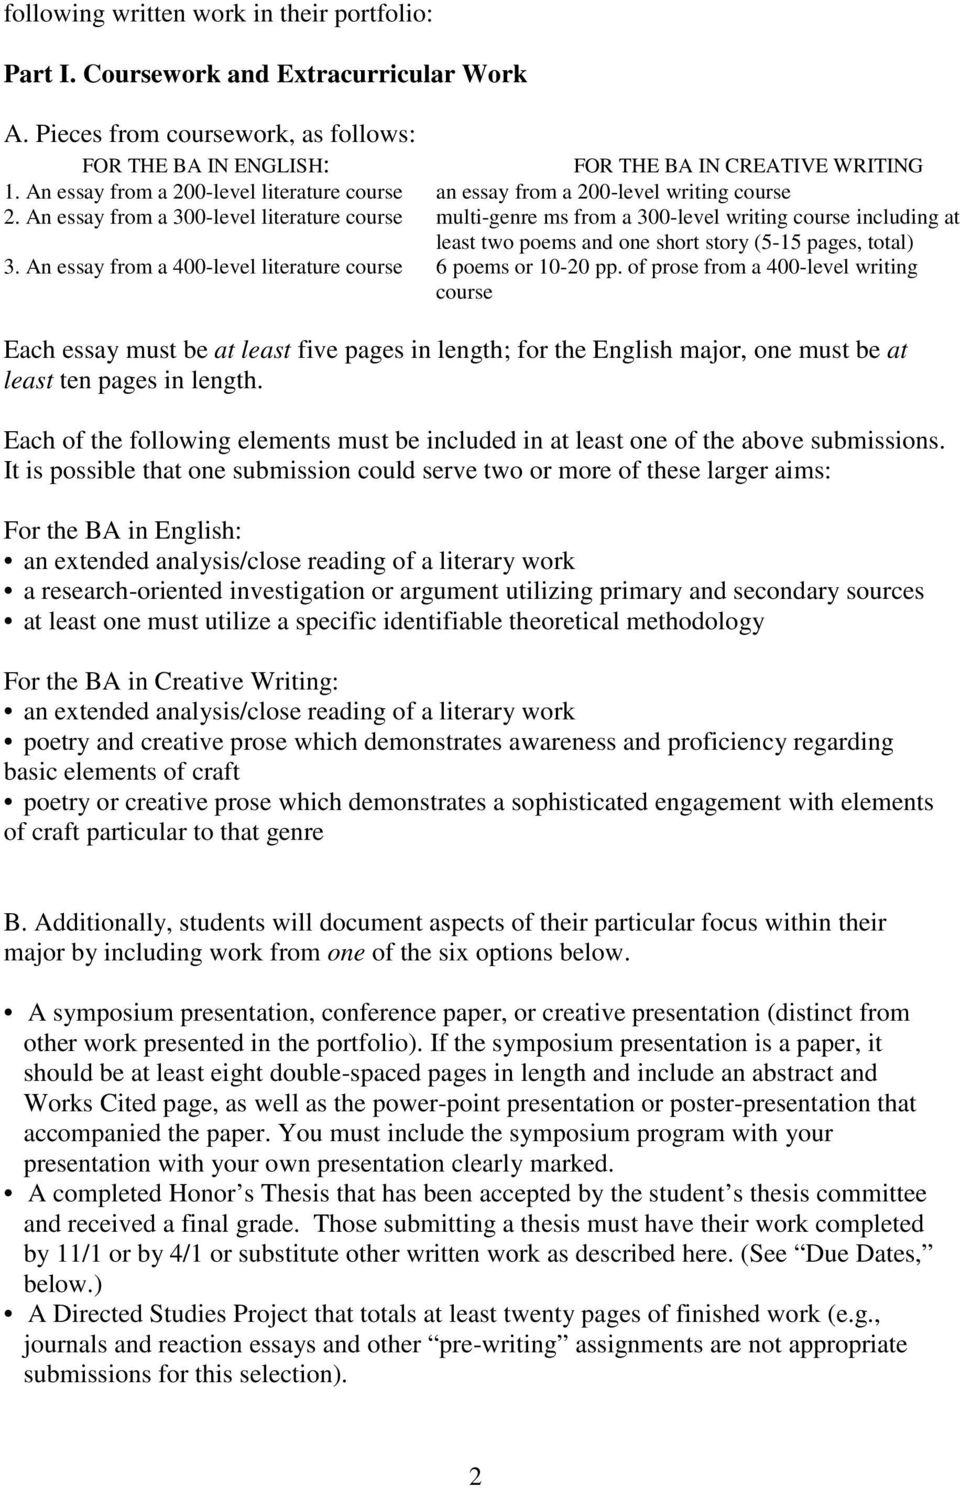 An essay from a 300-level literature course multi-genre ms from a 300-level writing course including at least two poems and one short story (5-15 pages, total) 3.